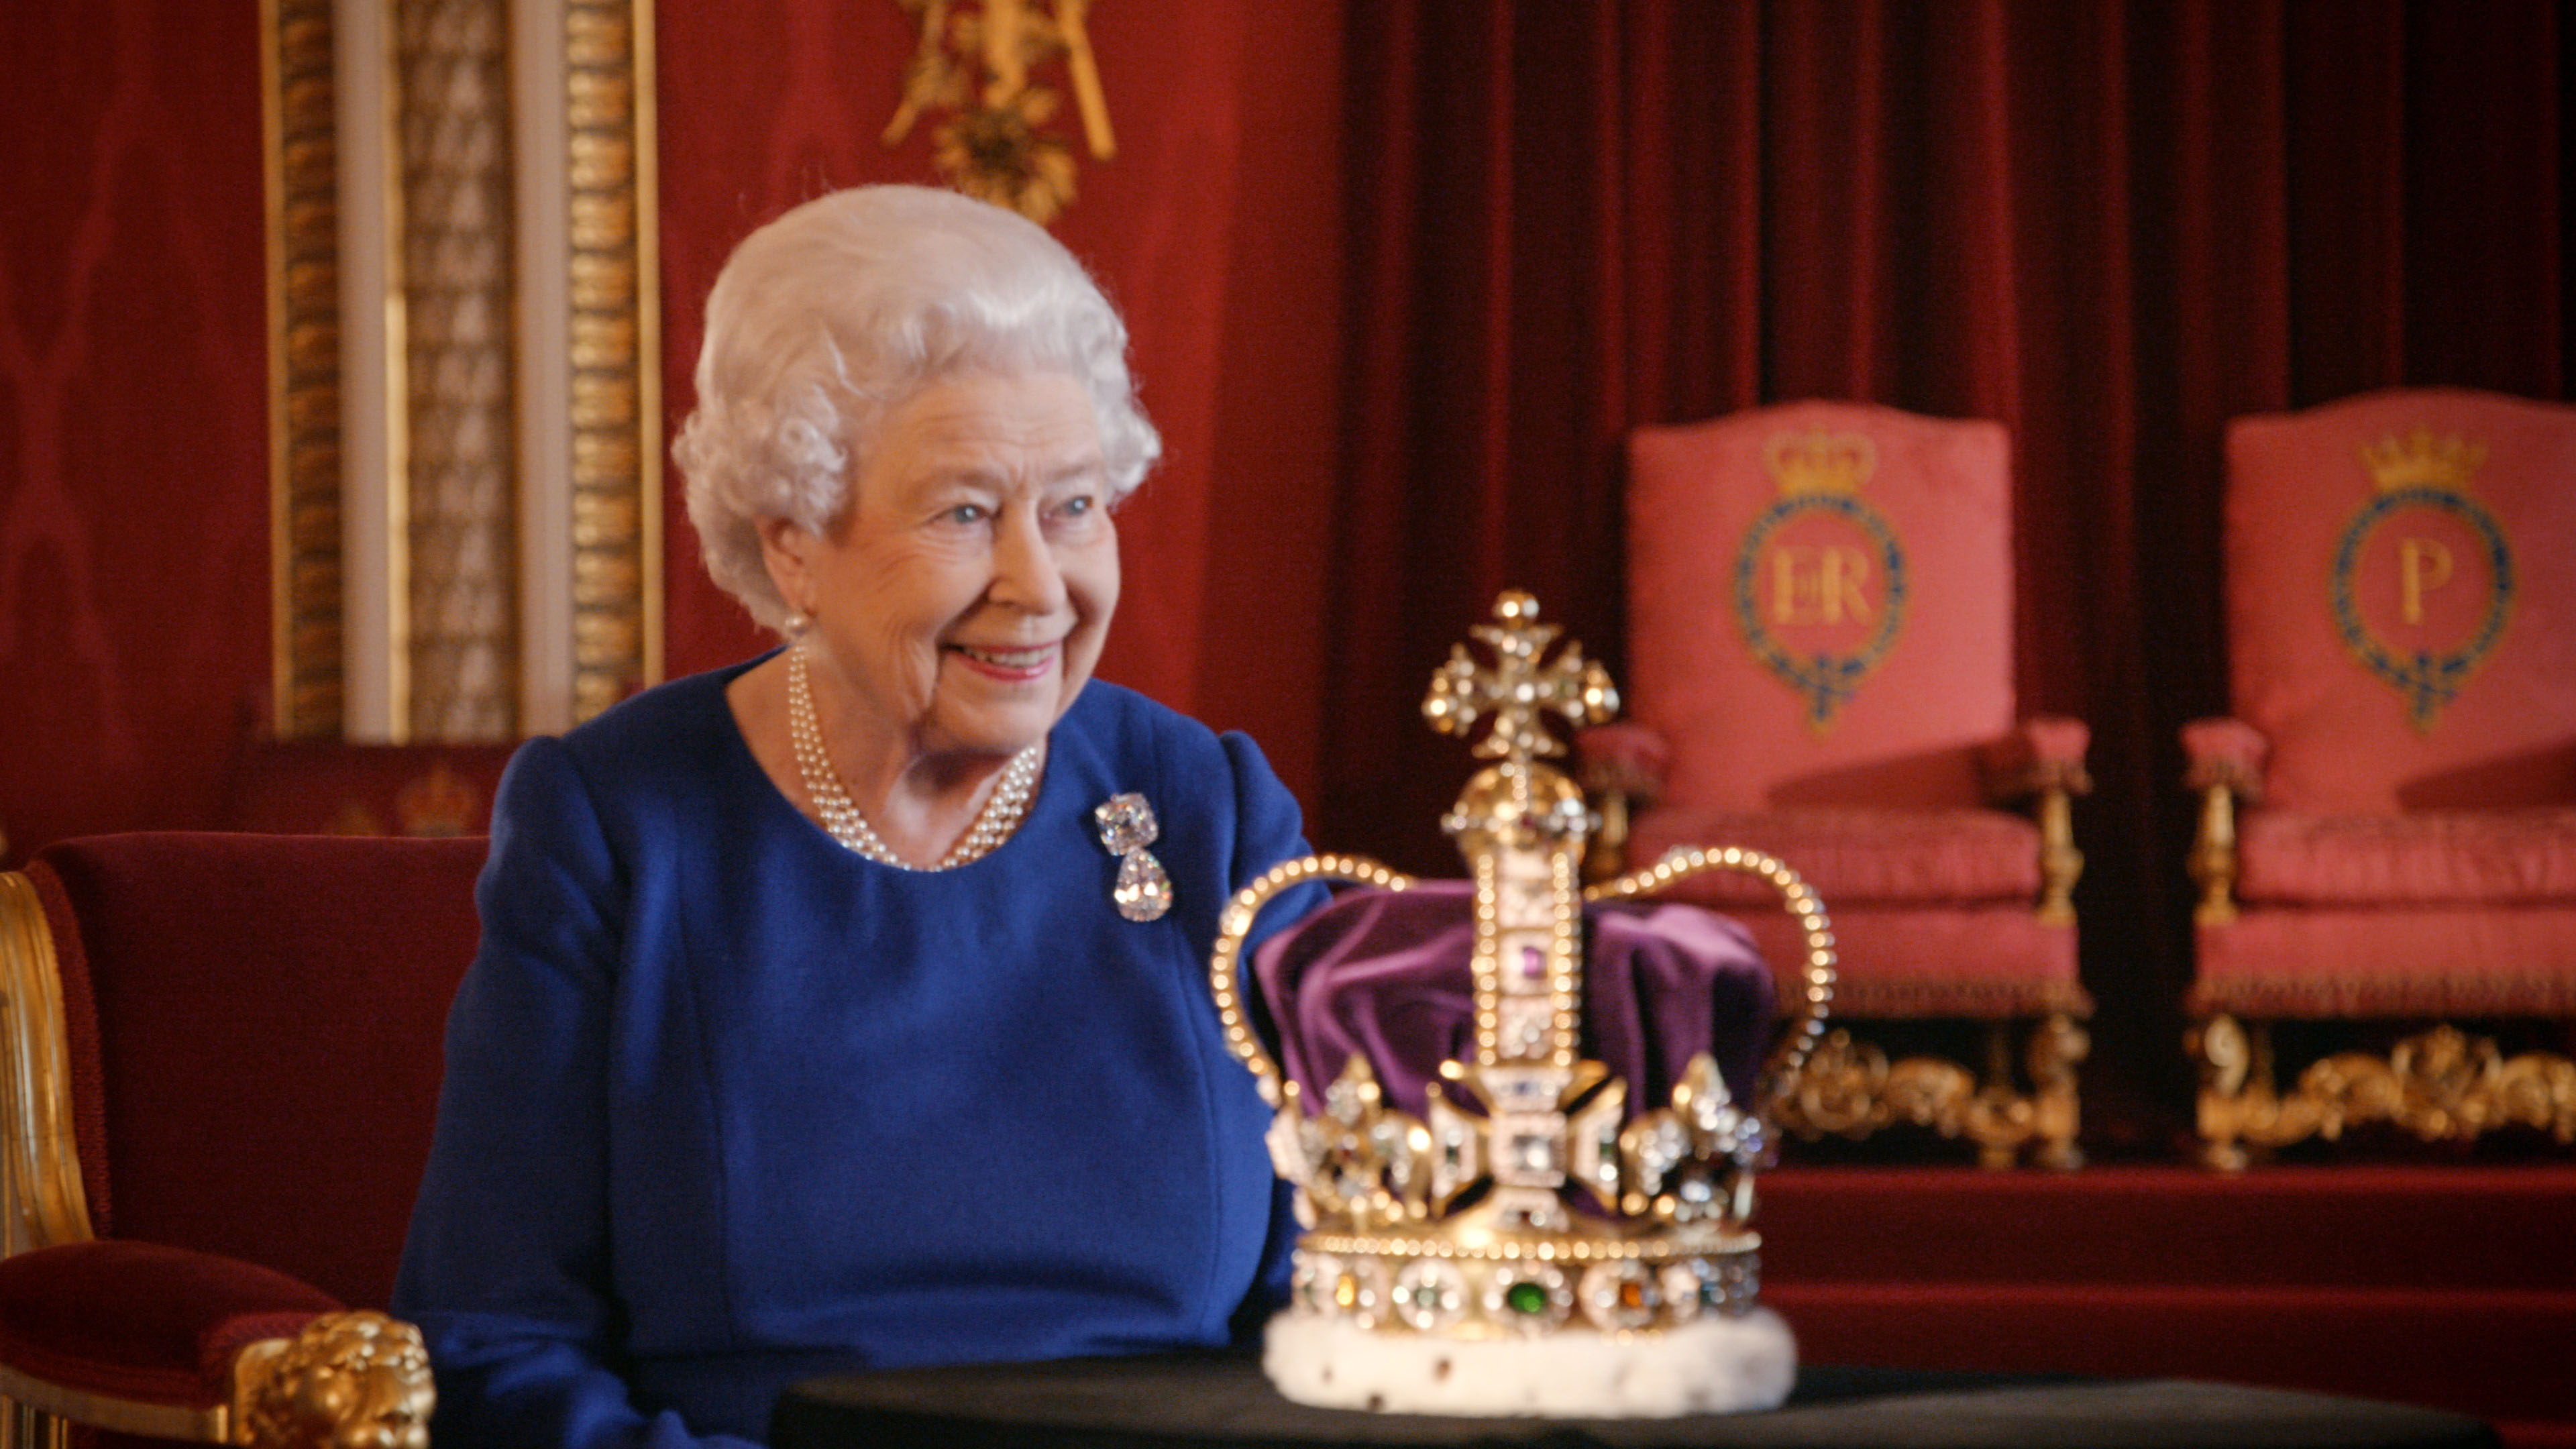 Don't look down: Queen's advice on crown